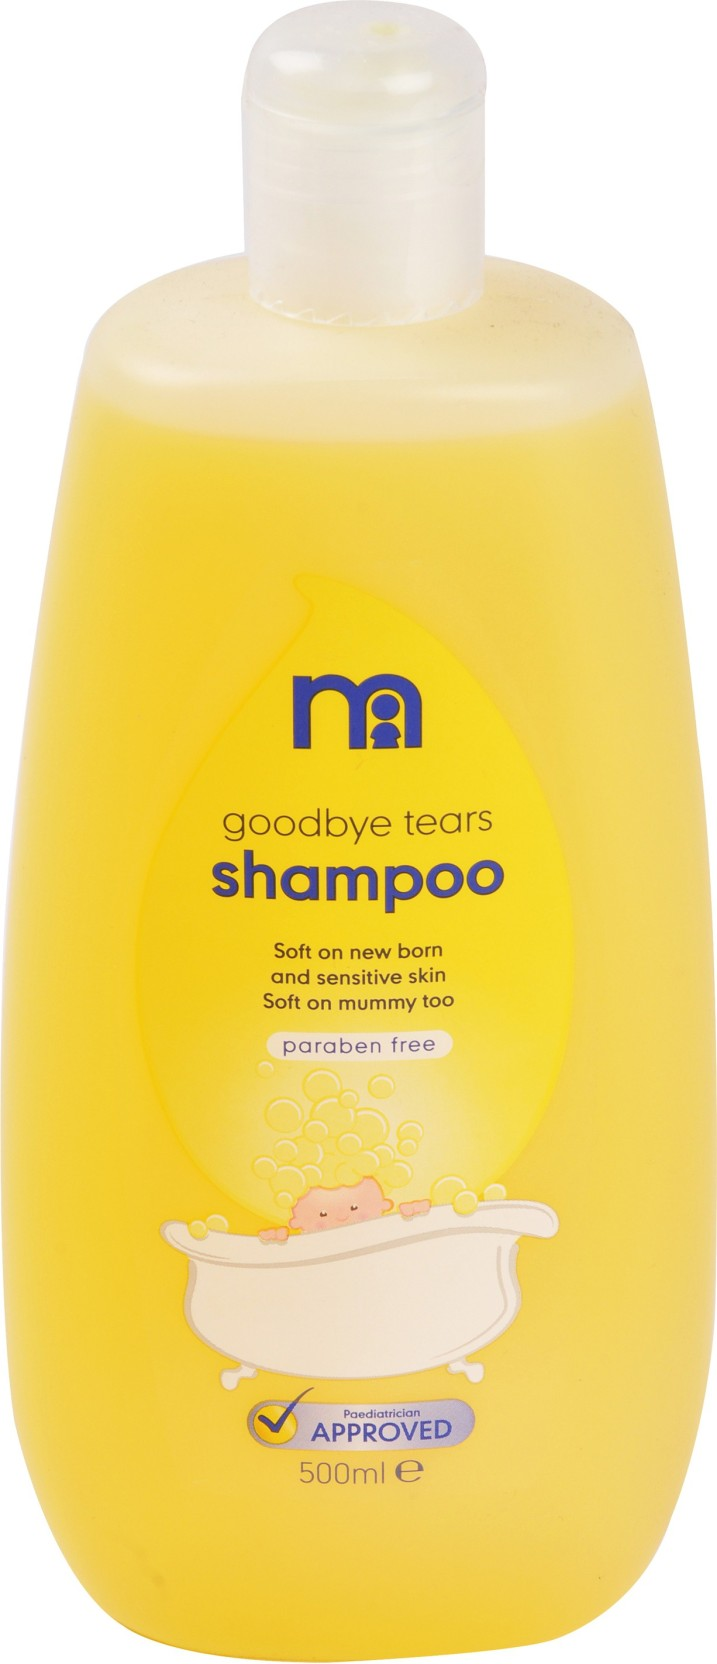 Mothercare Good Bye Tears Baby Shampoo 500ml 0m Price Buy 2 Get 20 Chicco Moments Bath Foam Soft Cup Share